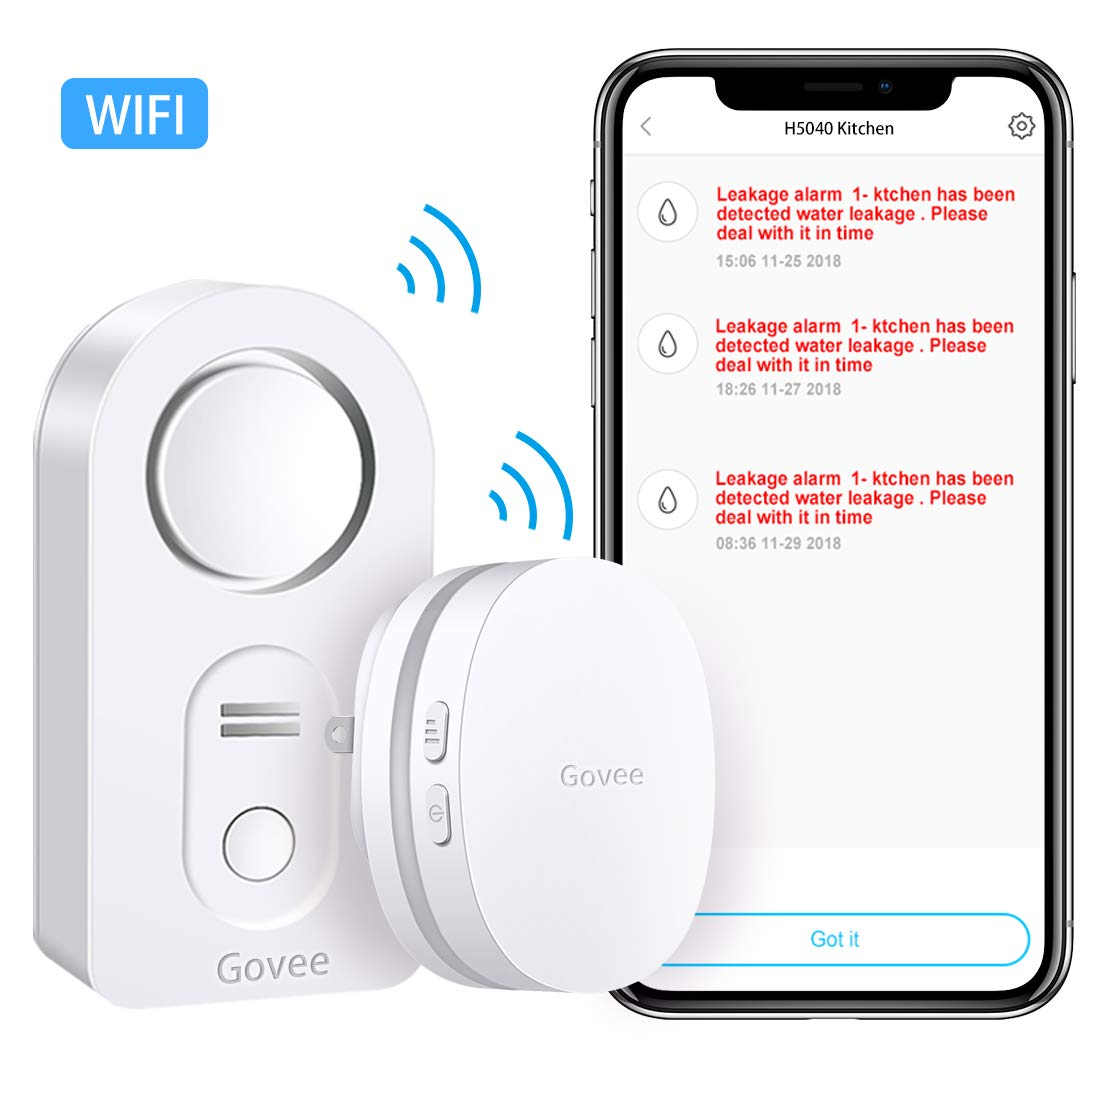 Govee WiFi Water Leak Detector, Smart APP Leak Alert, Wireless Water Sensor and Alarm with Email, Notification, App Alerts, Remote Monitor Leak for Home Security Basement (Not Support 5G WiFi)